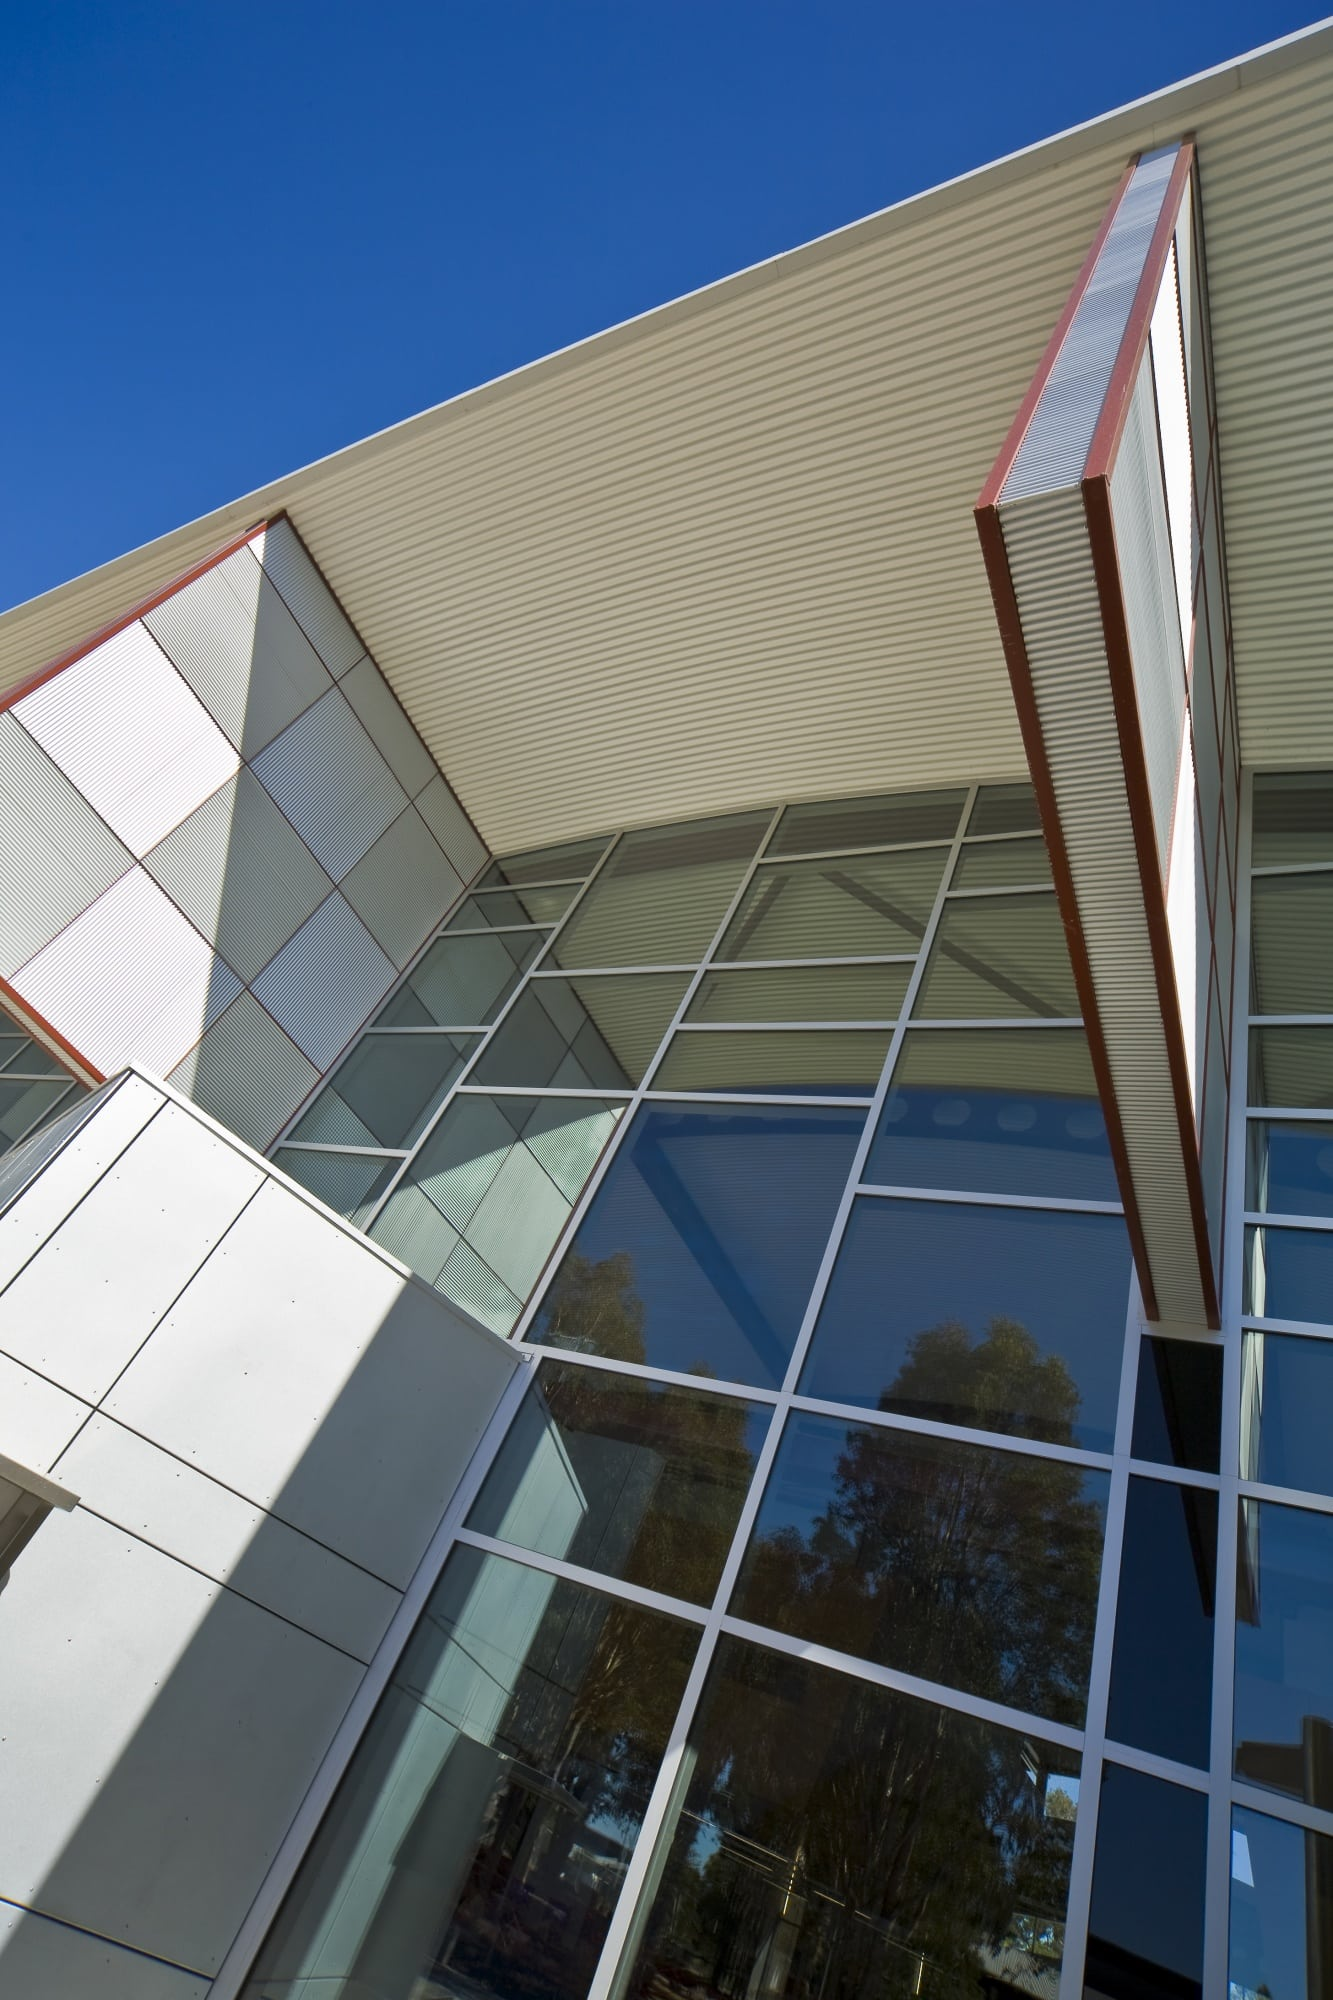 Charles Sturt University - Thurgoona Campus 'Learning Commons Building' - FrontGLAZE™ framing